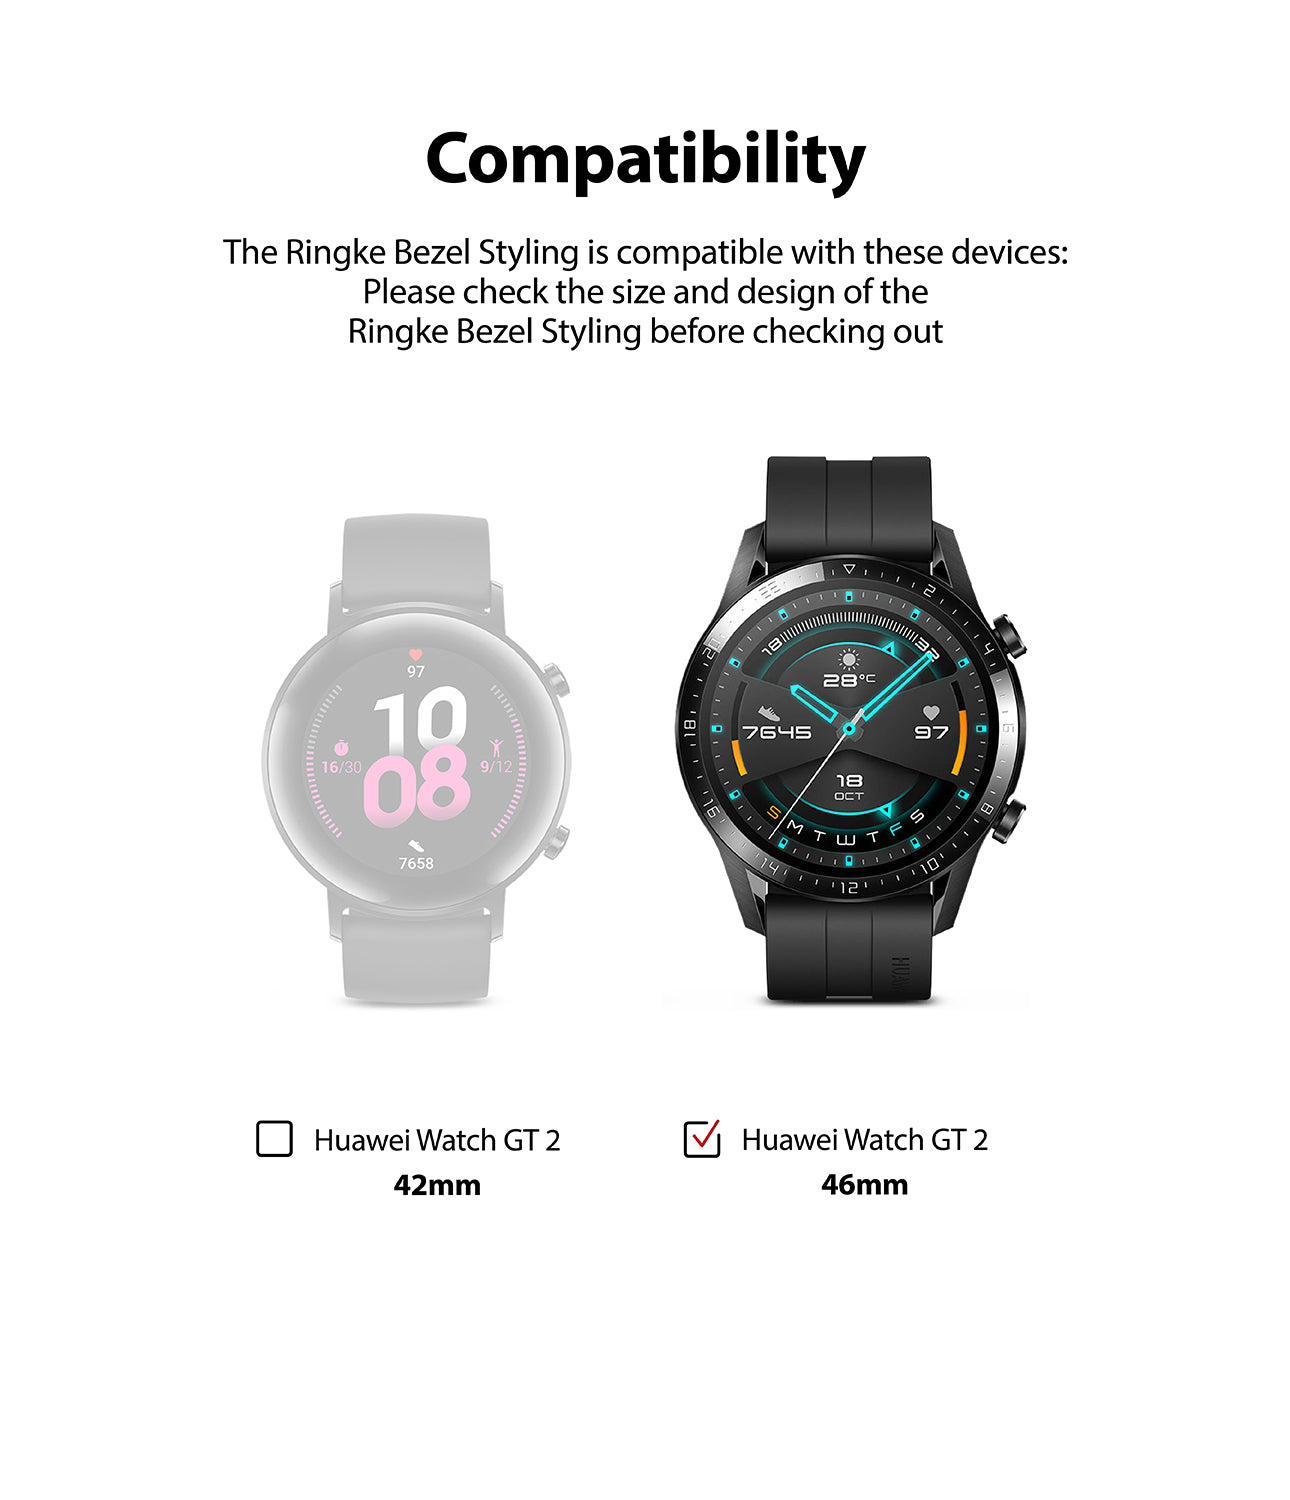 only compatible with huawei watch gt 2